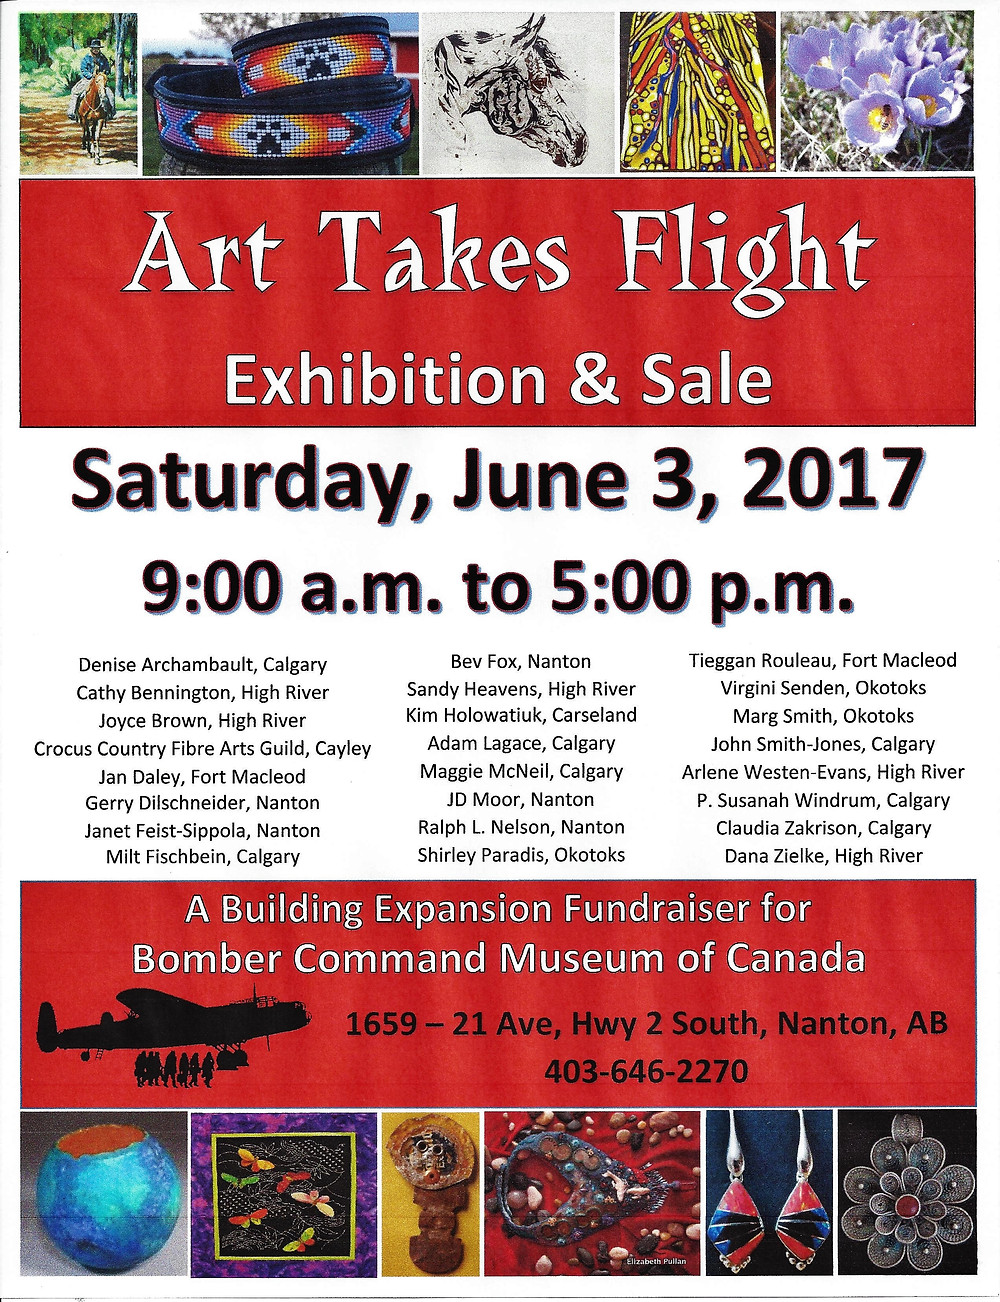 Come join me for some great art fun!!